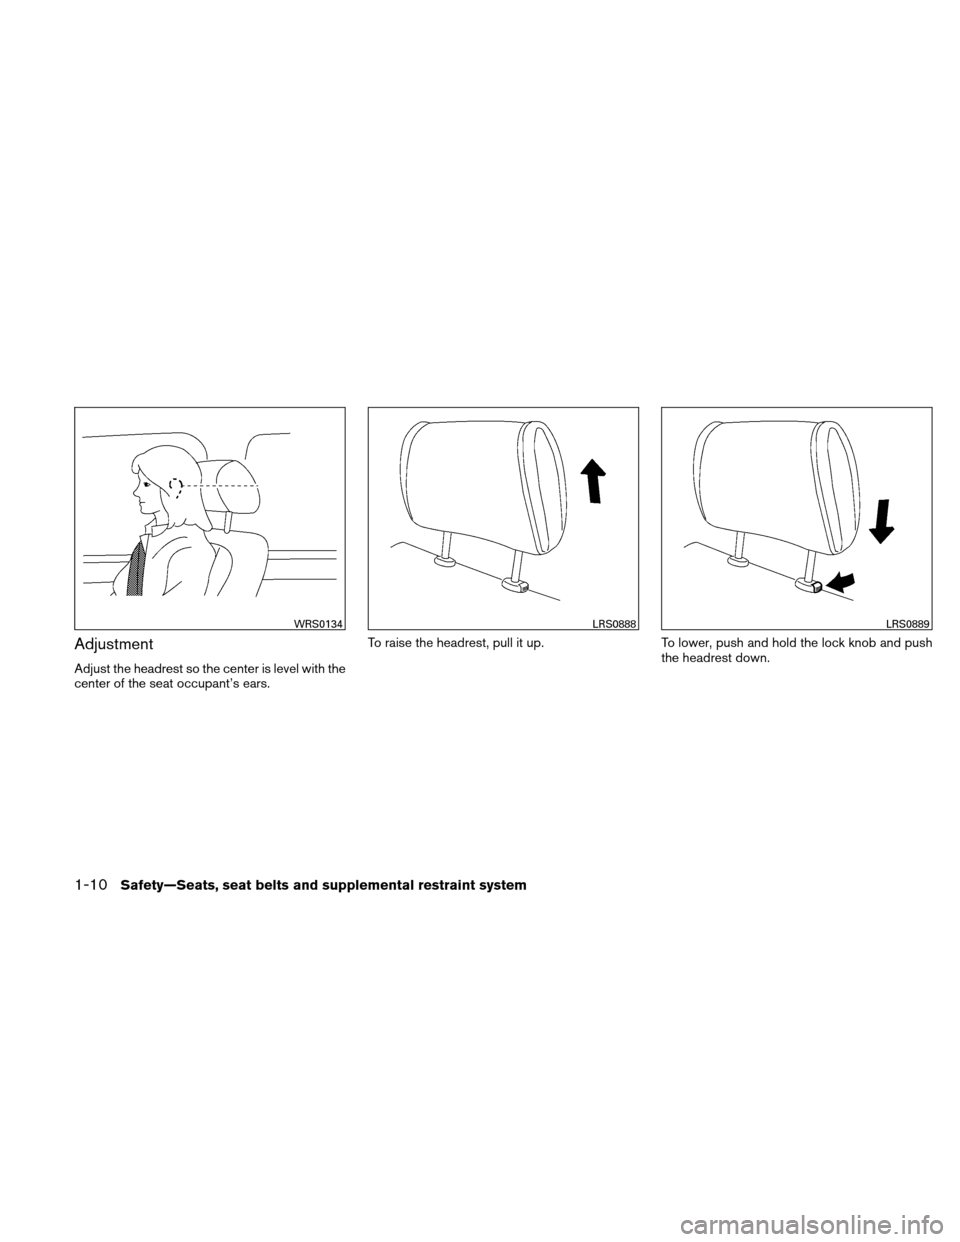 NISSAN VERSA HATCHBACK 2010 1.G Owners Manual, Page 29